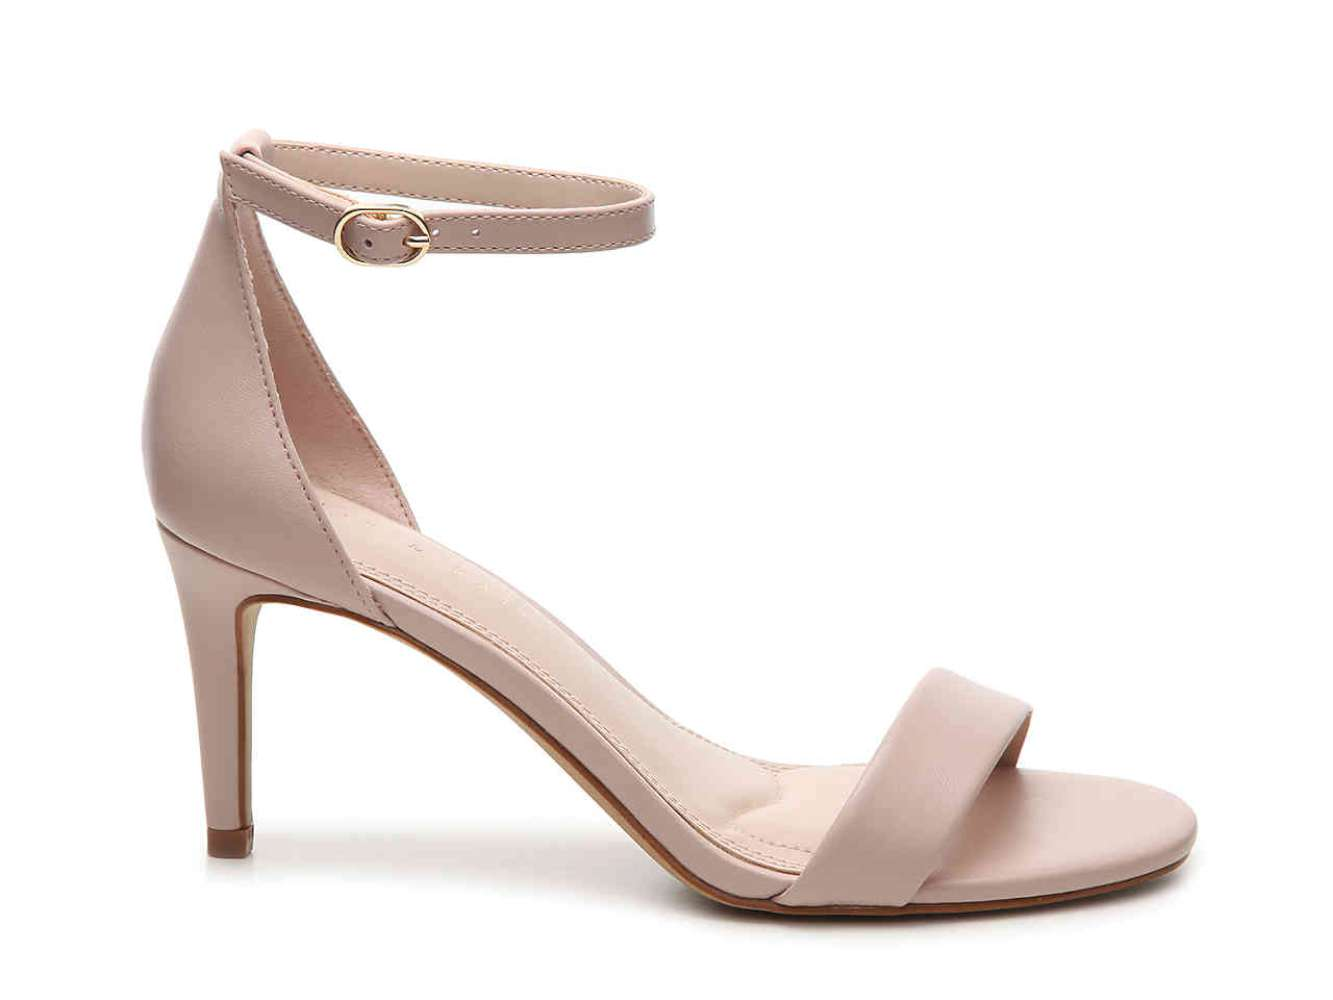 Kelly Katie Womens Kirstie Open Toe Ankle Strap Classic light pink Size 9.0